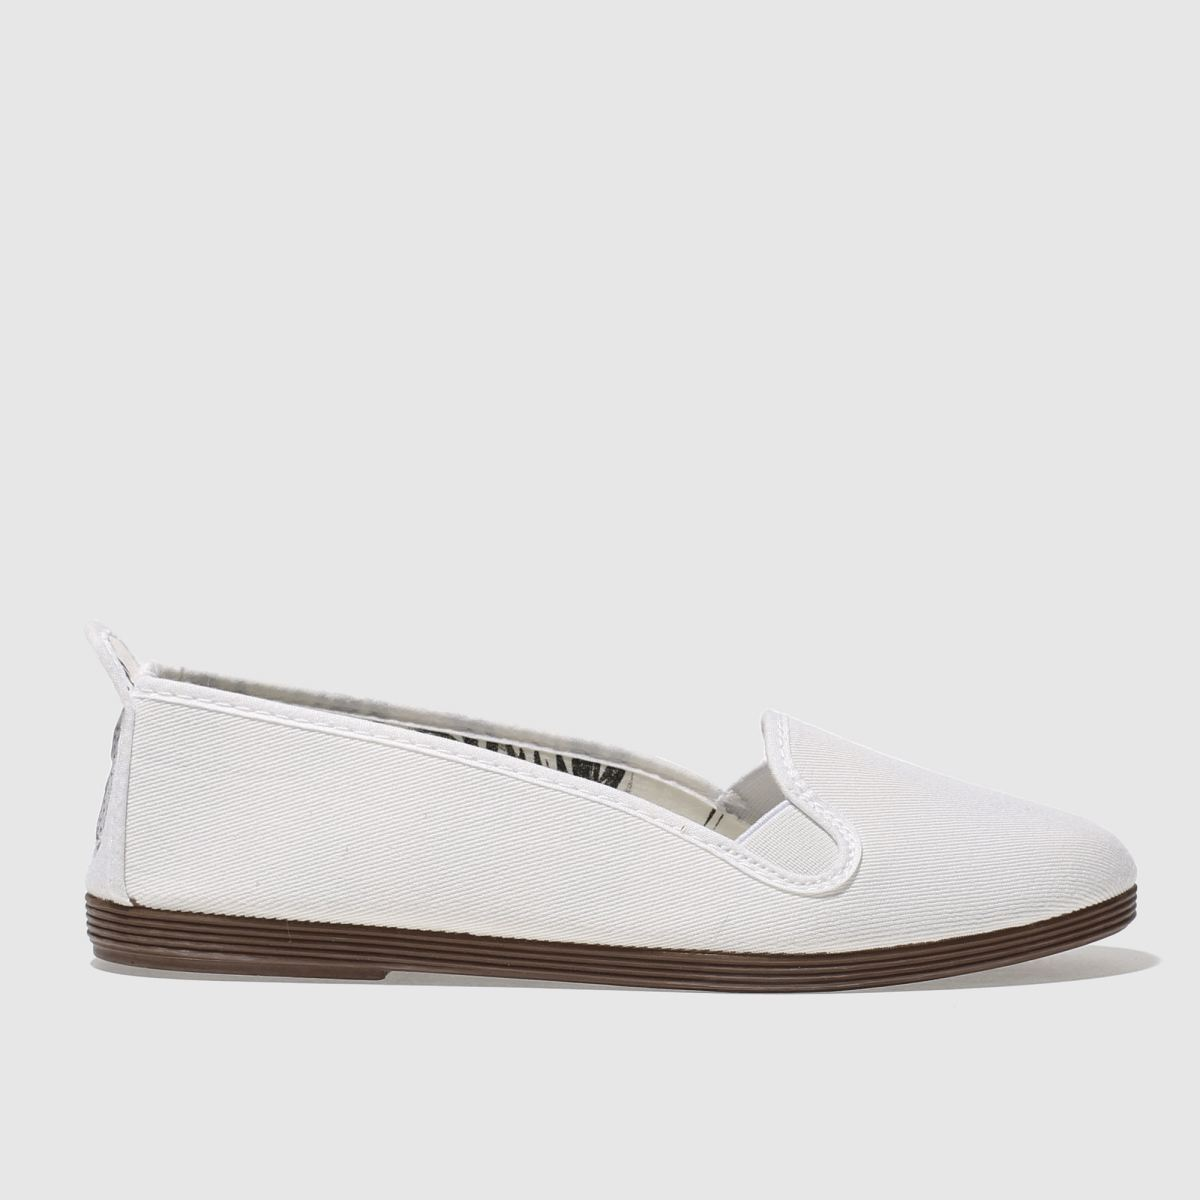 Flossy Flossy White Mijas Flat Shoes